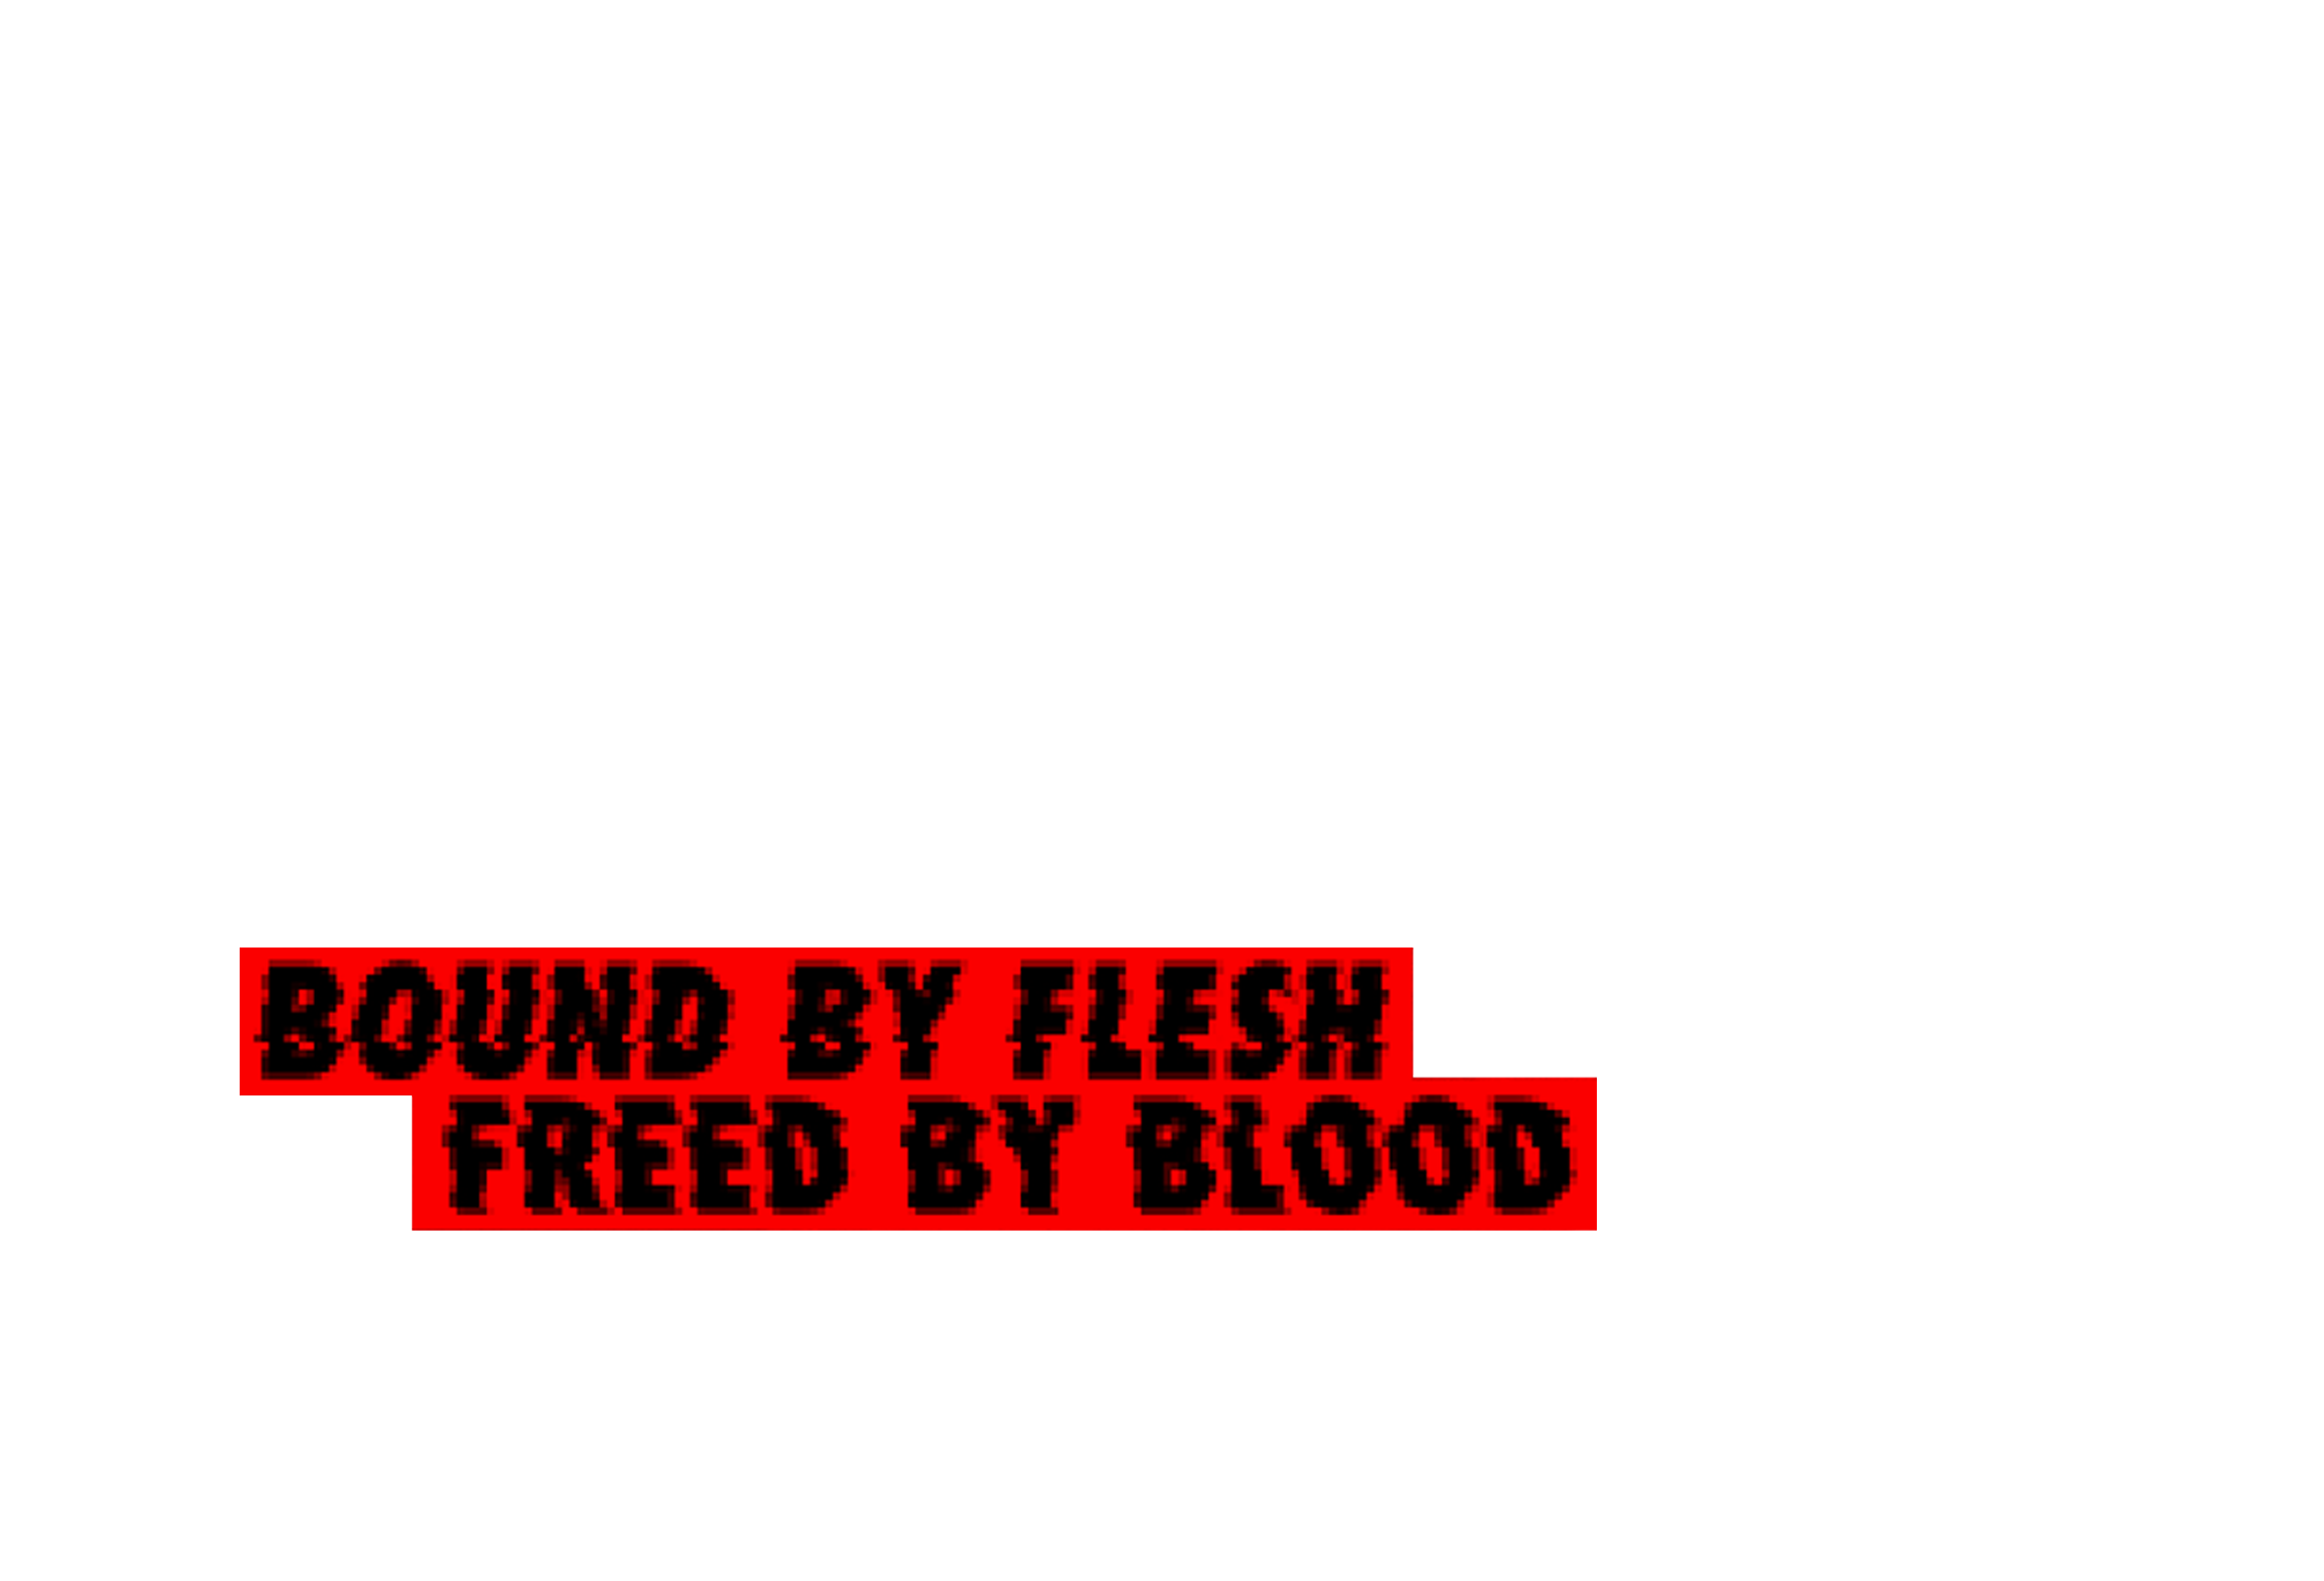 bound by flesh // freed by blood